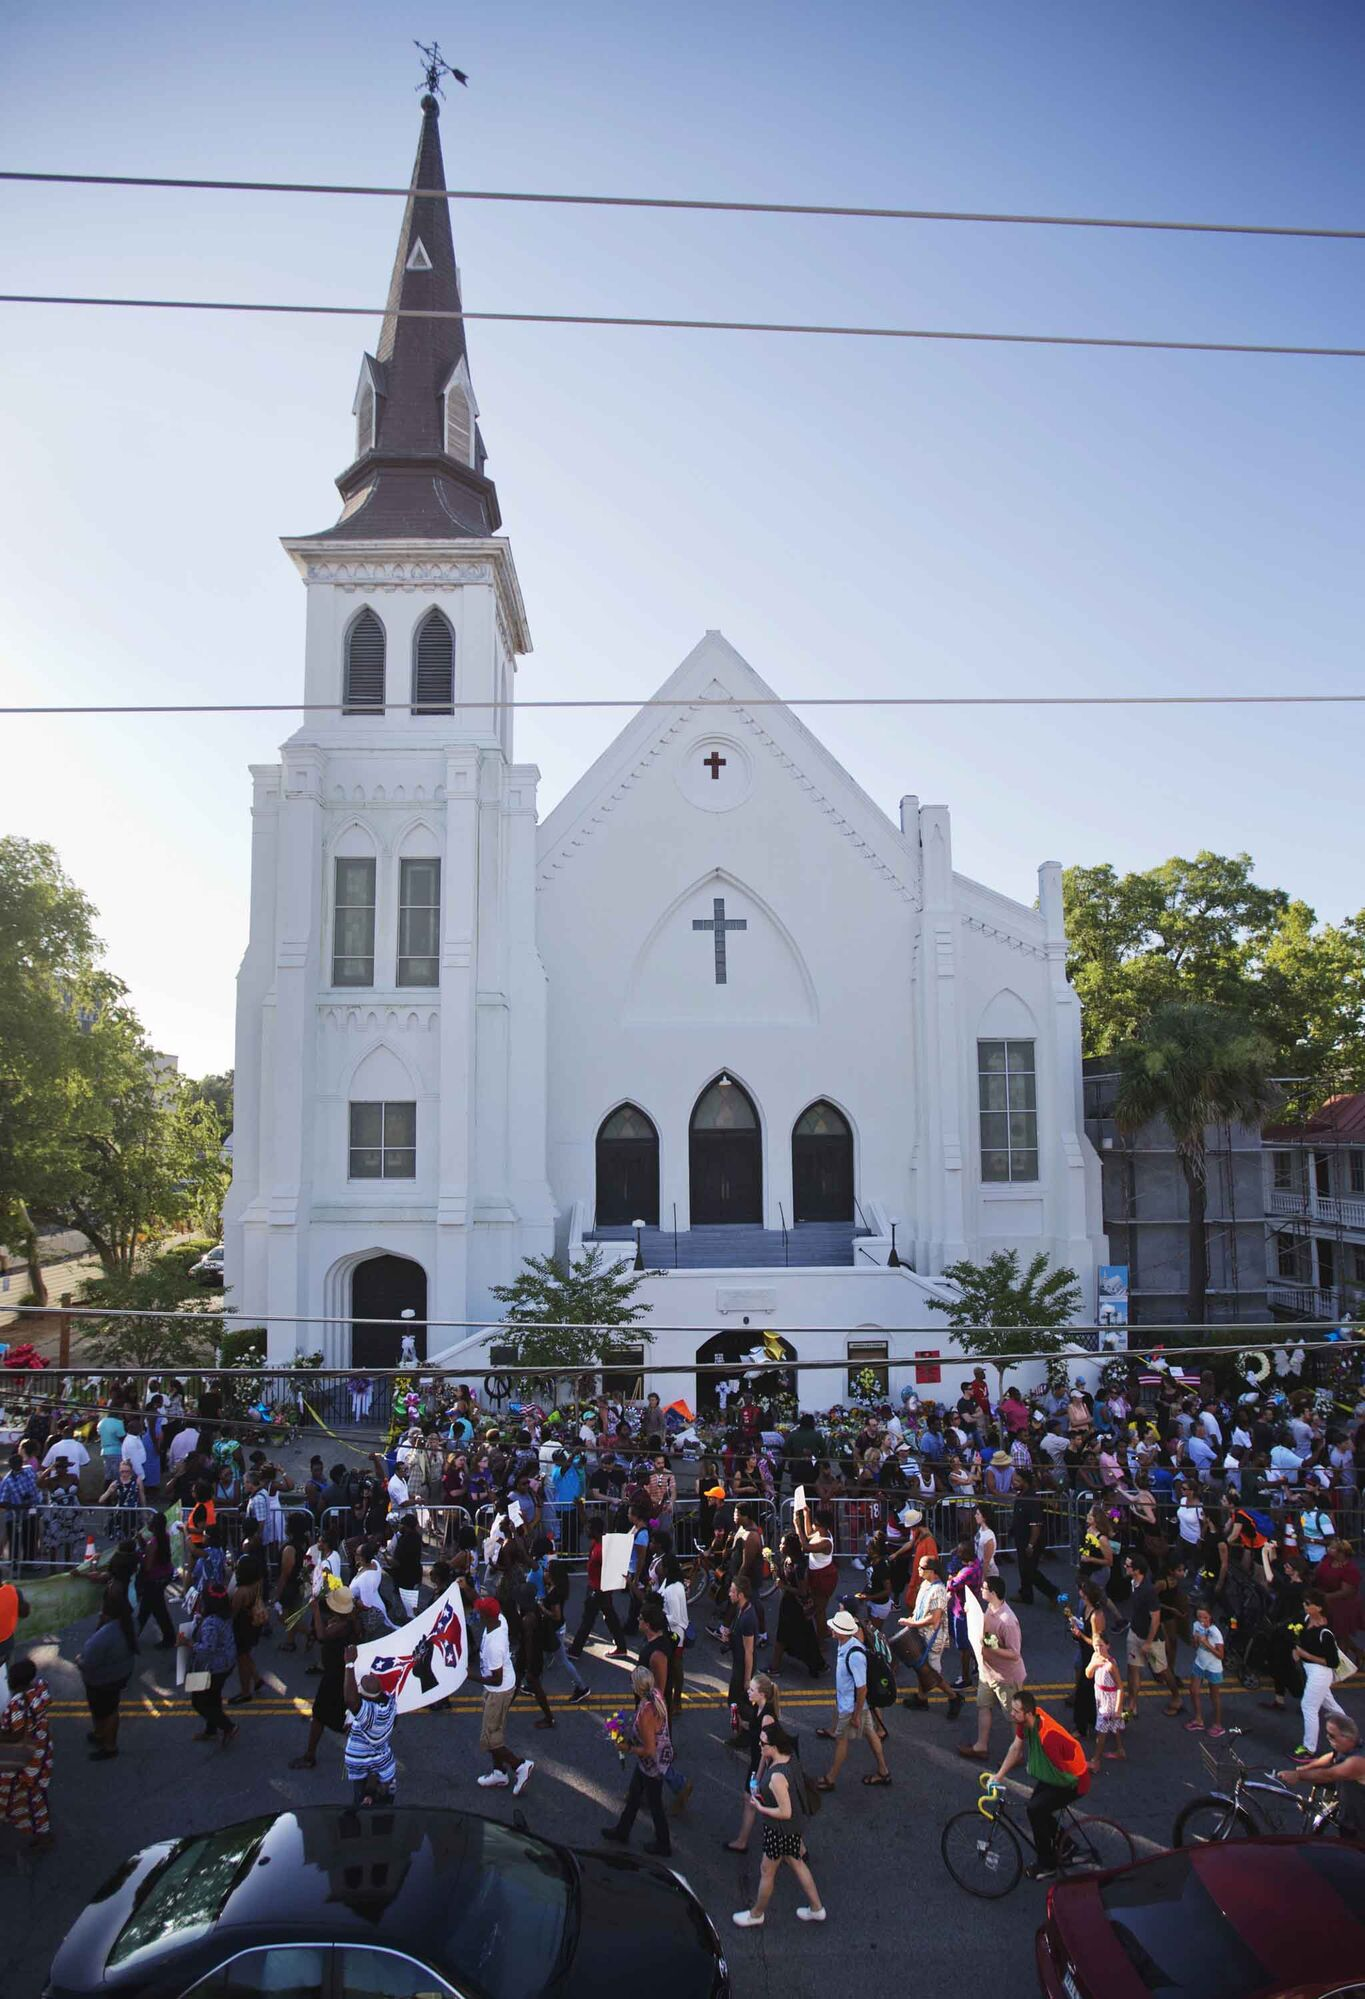 On June 20, 2015 people marched in memory of the Emanuel AME Church shooting victims in Charleston, S.C.